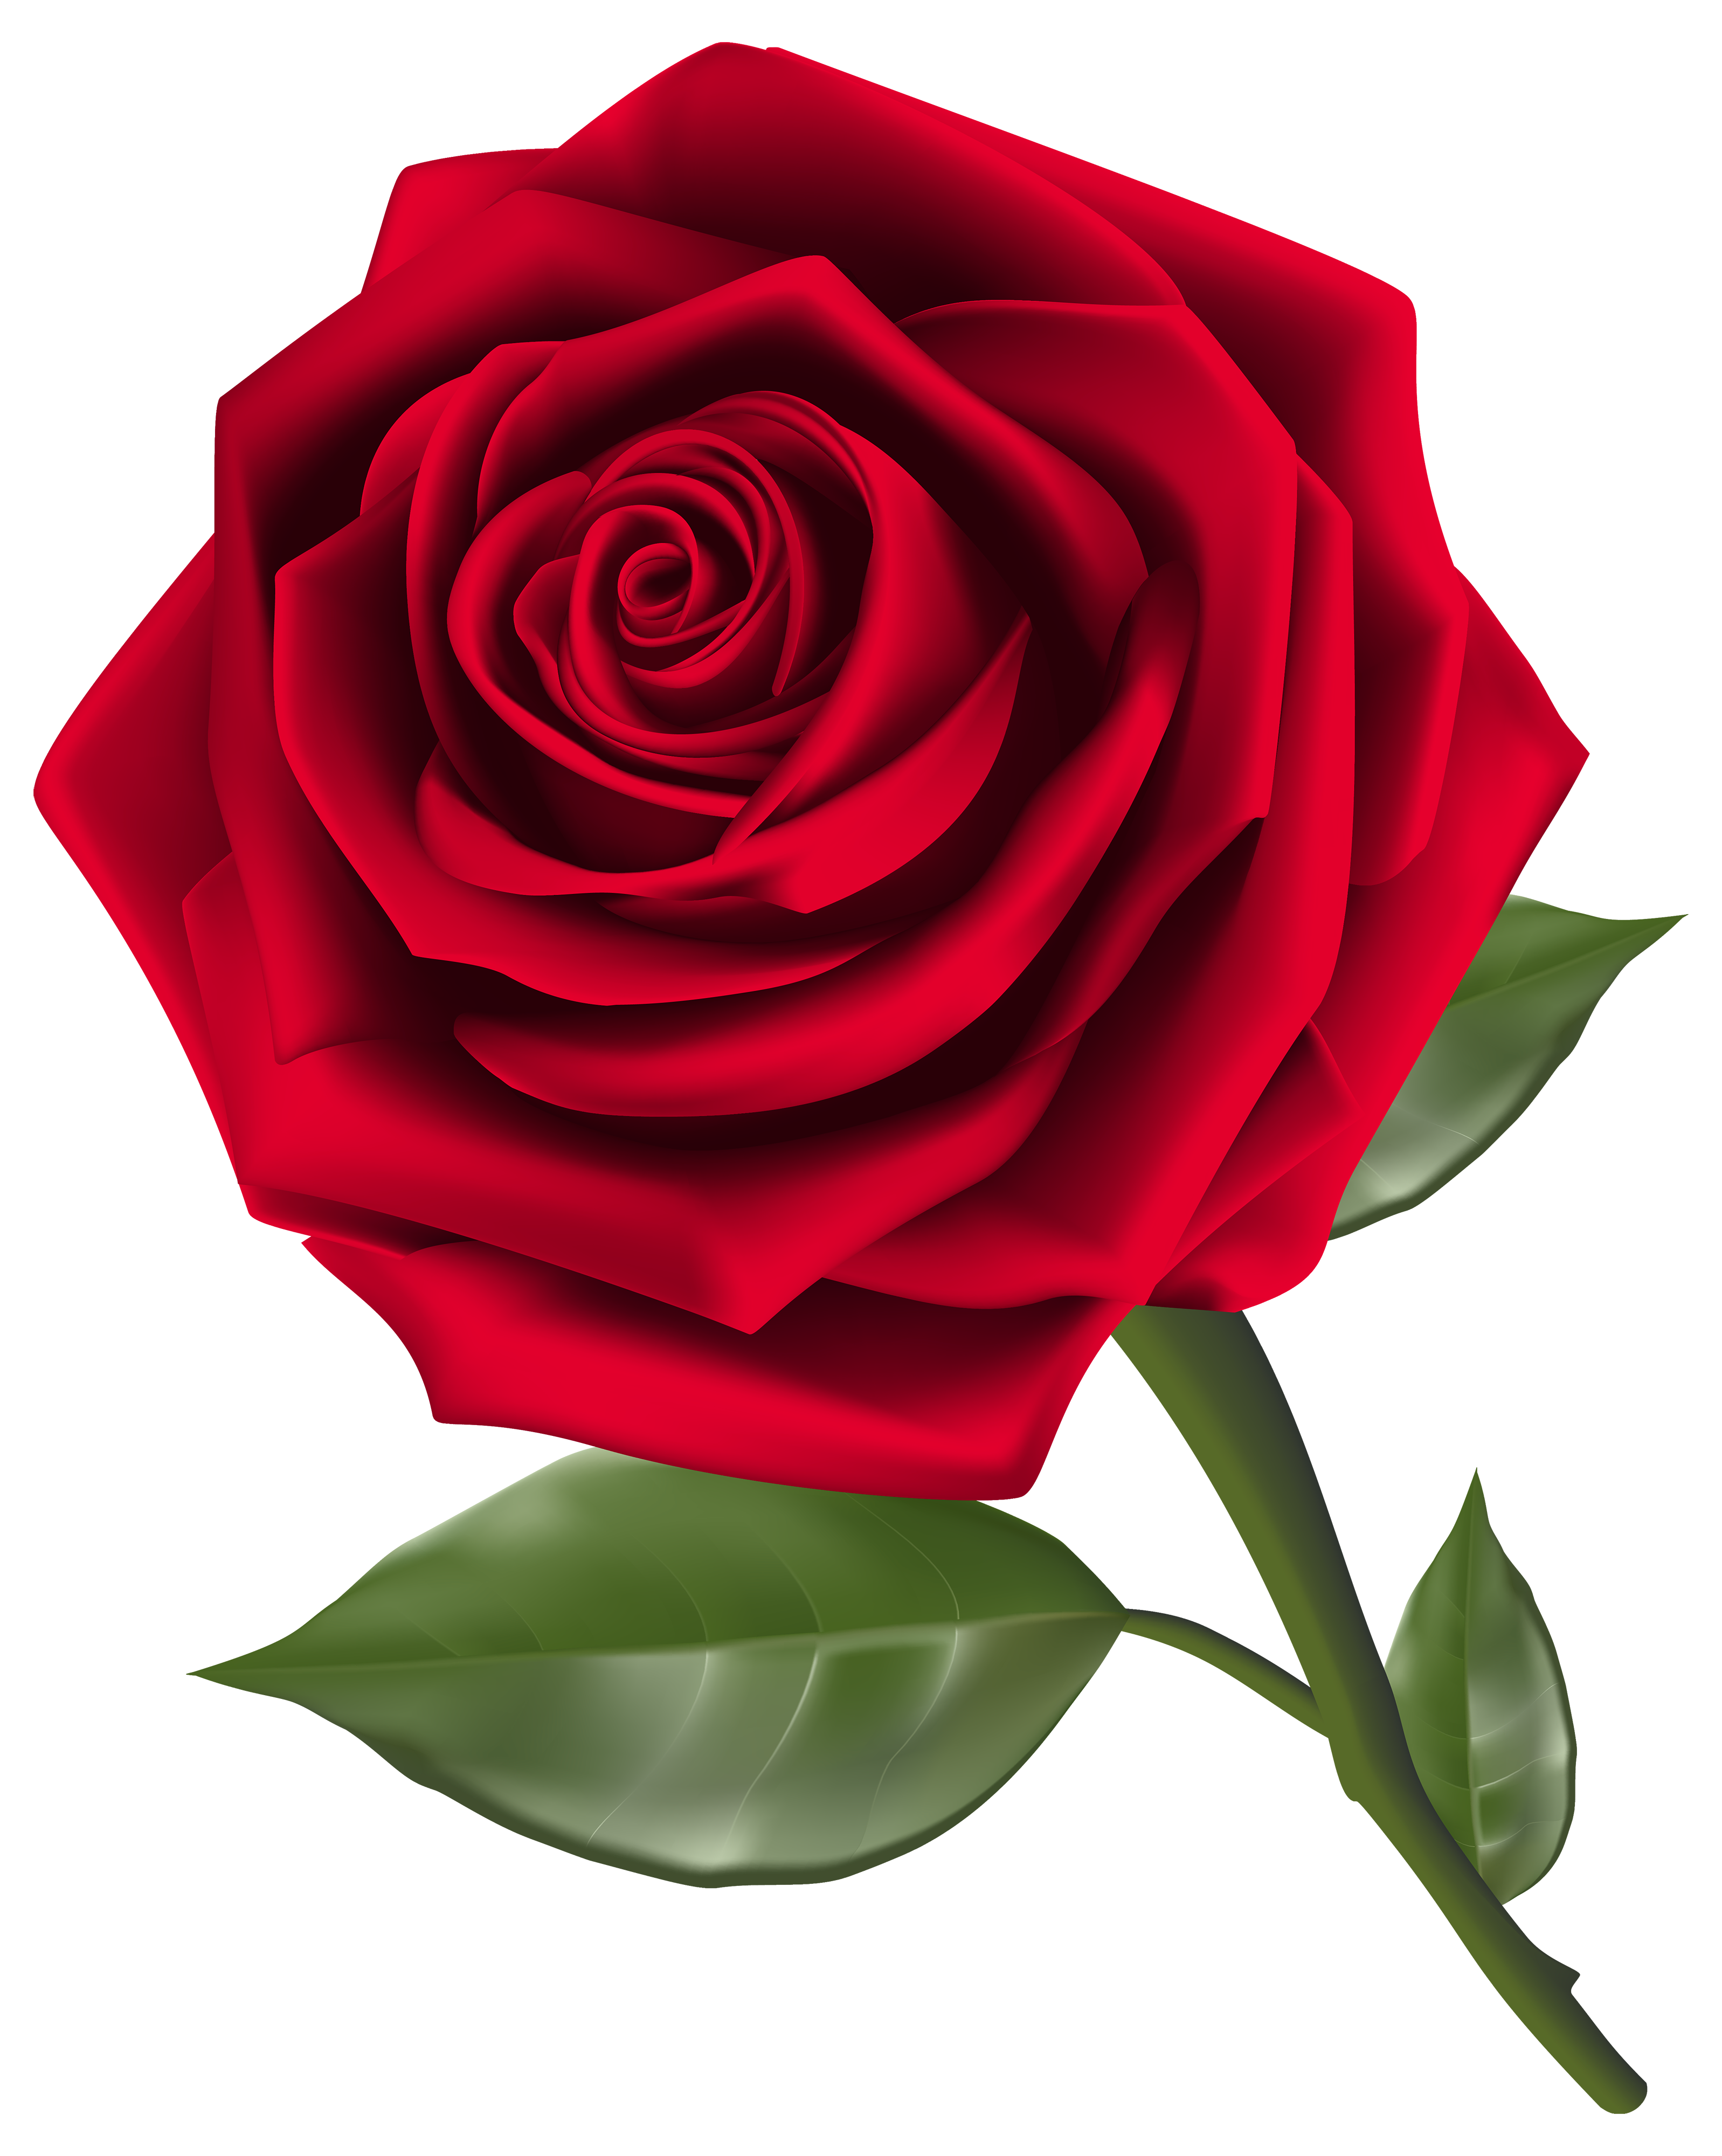 Red rose clipart image vector library library Beautiful Red Rose PNG Clipart - Best WEB Clipart vector library library